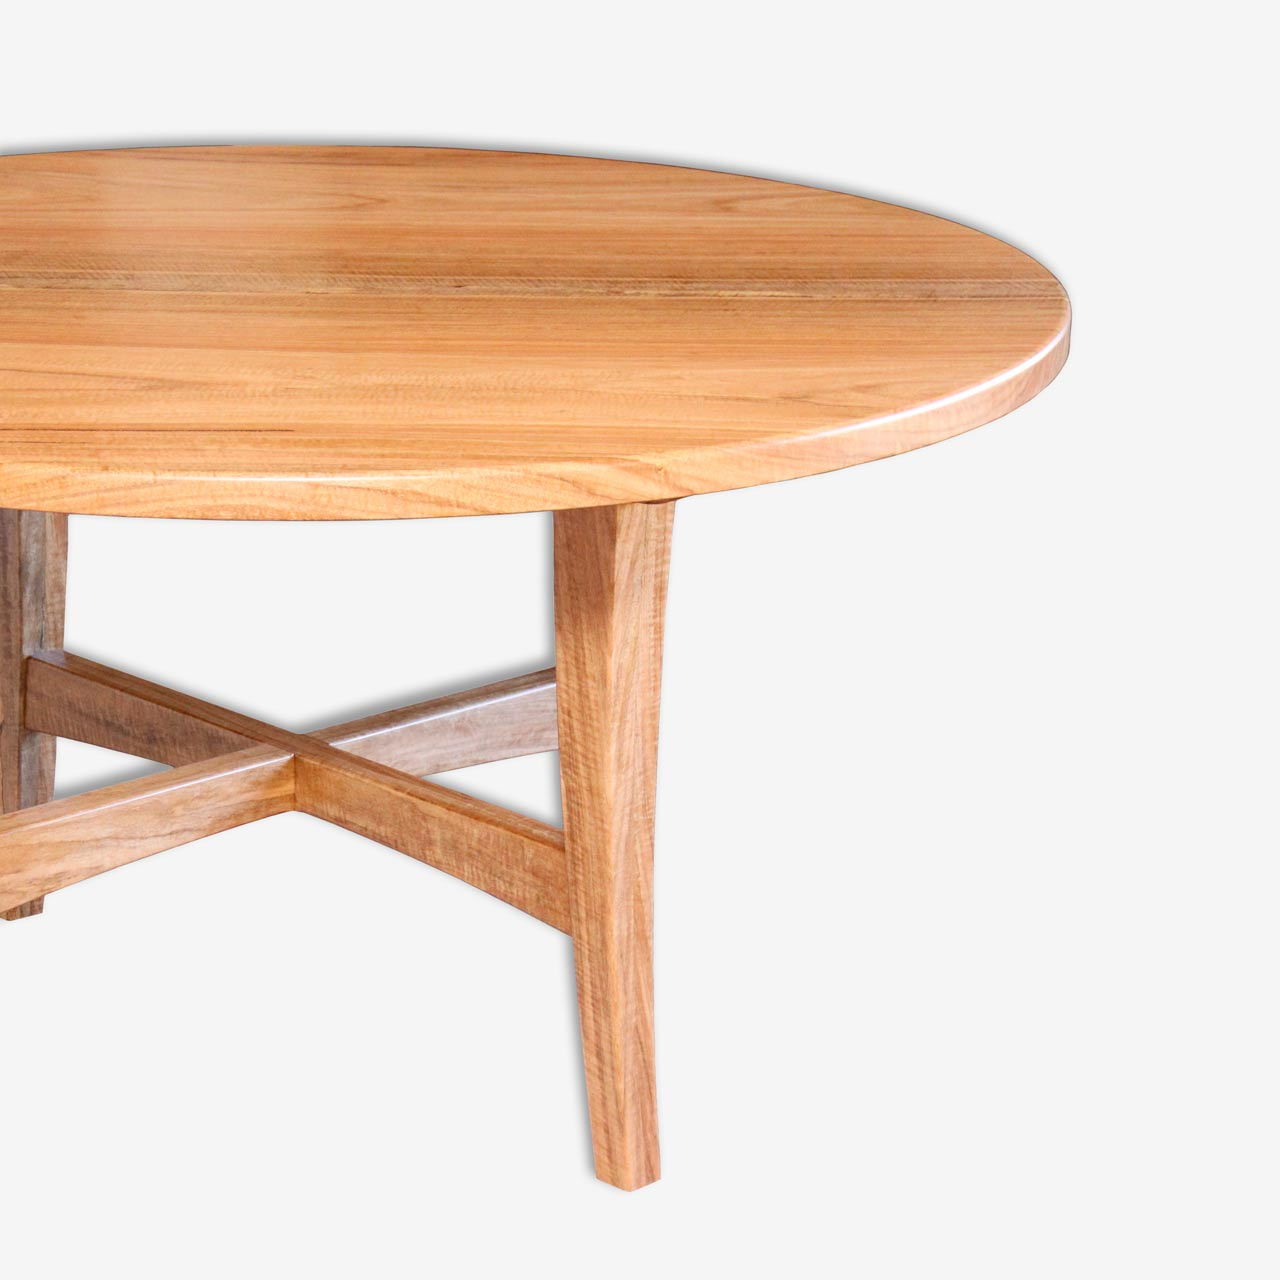 Marri Dining Table Perth Focus Round Dining Table Treeton